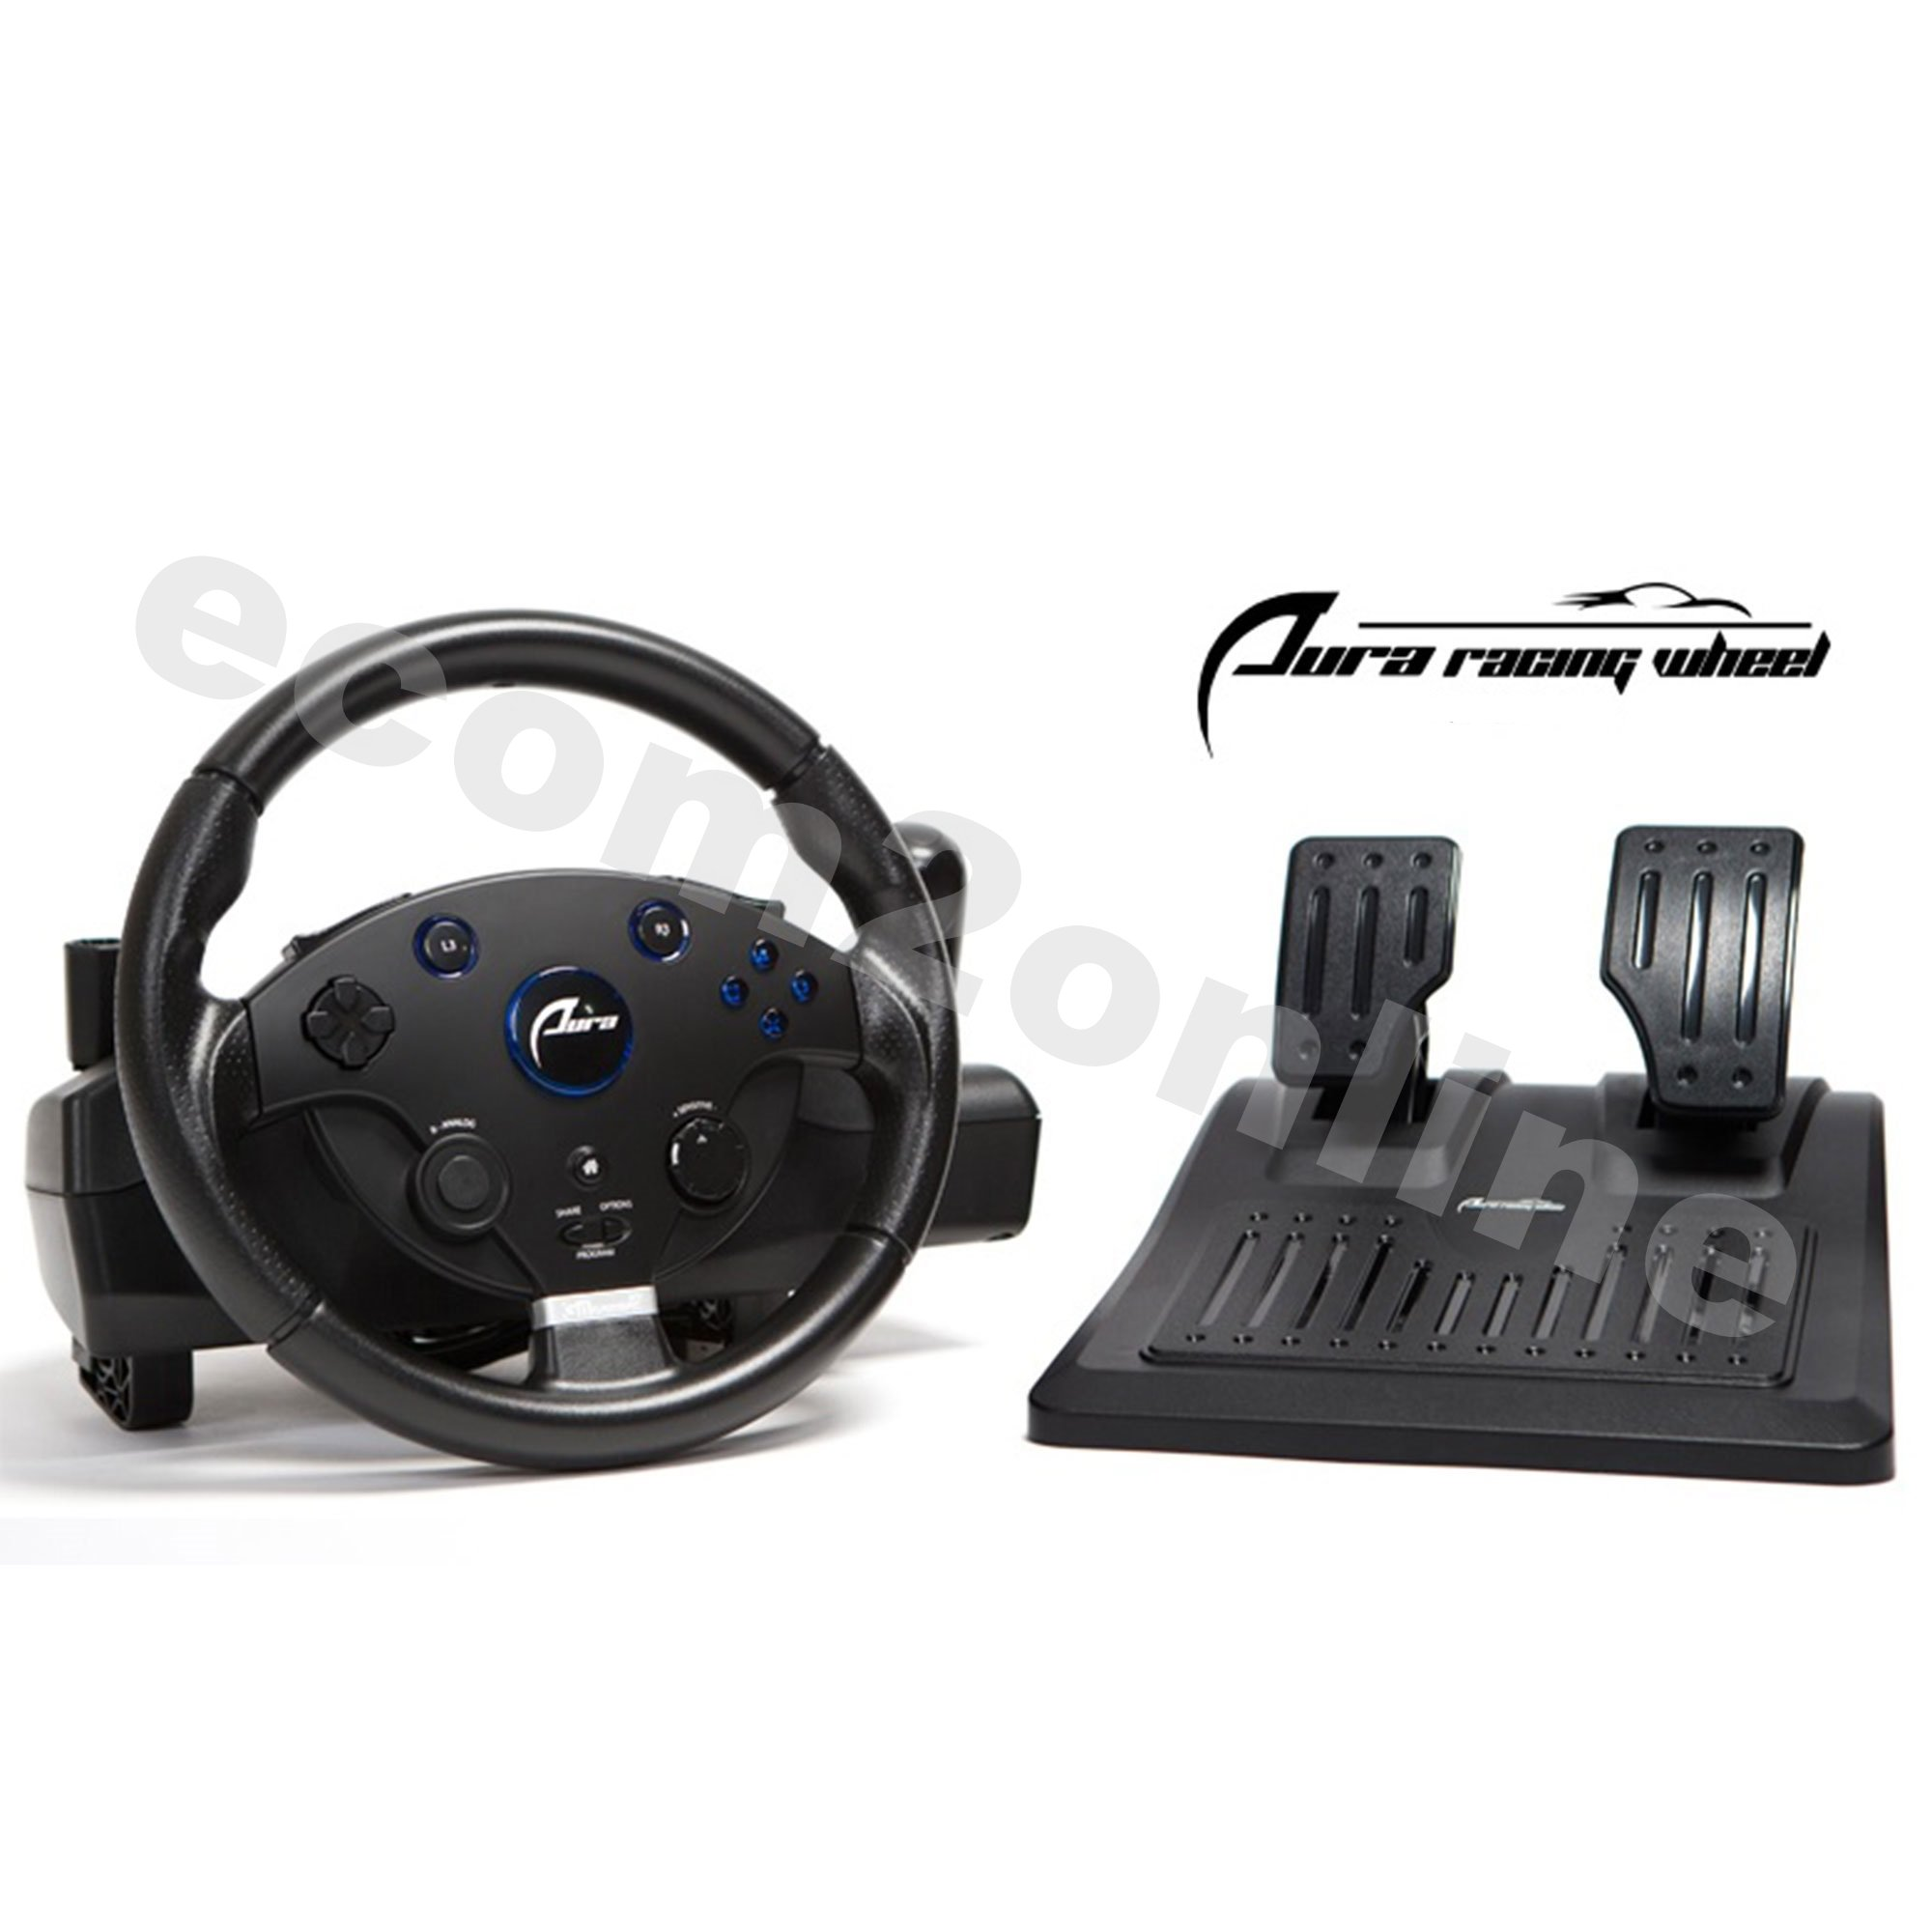 AURA Racing Wheel For PS3, PS4, PC, XBOX